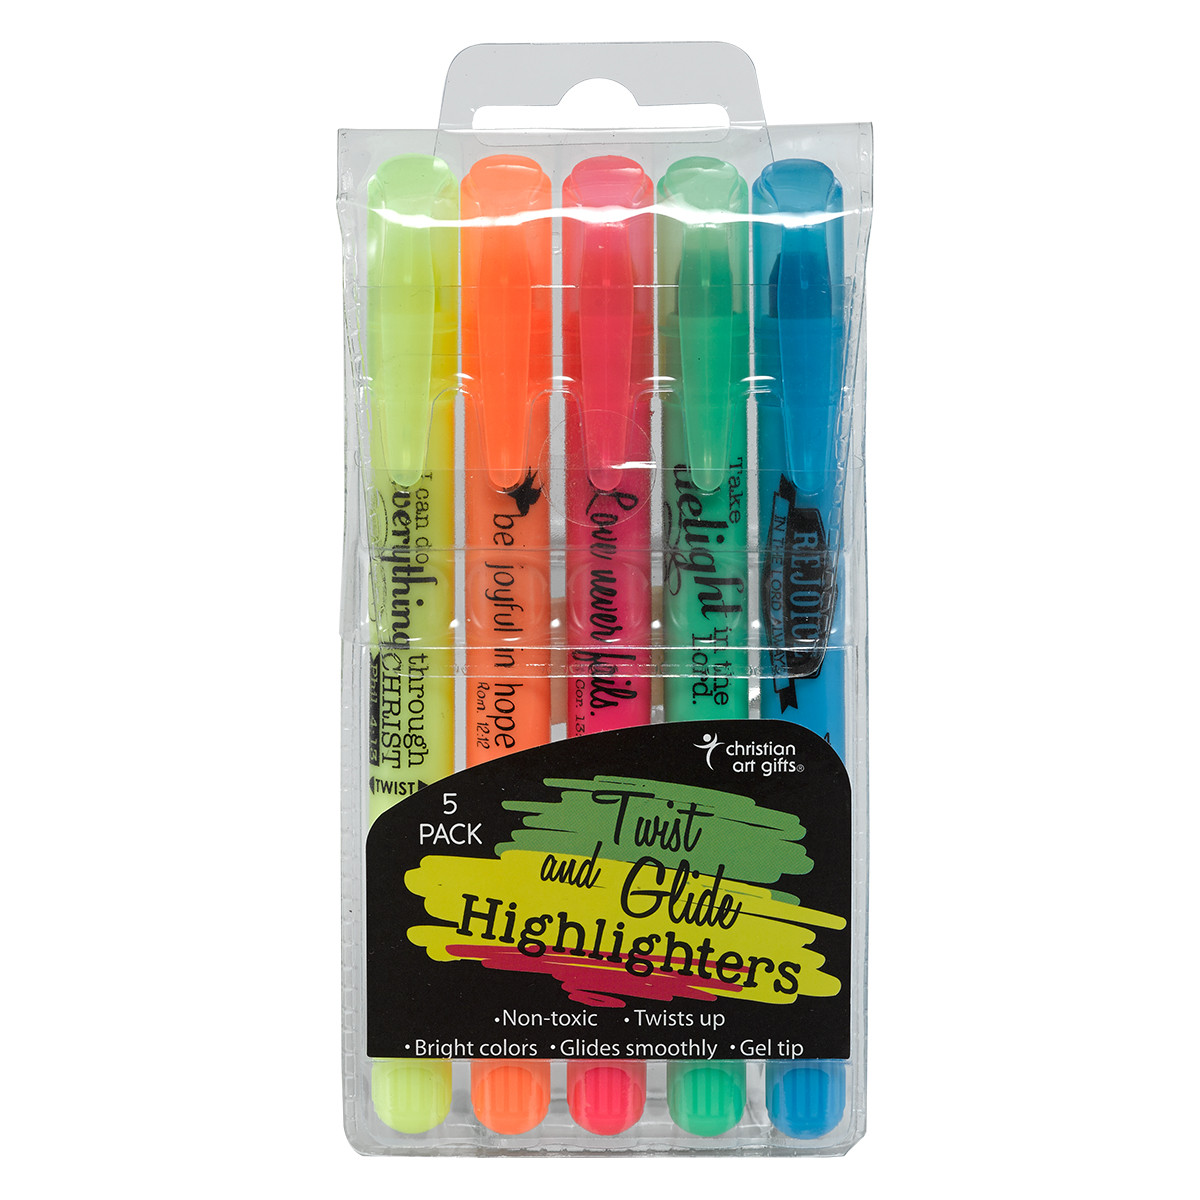 Twist and Glide Highlighter Set markers, bible markers, colored pencils, highlighters, HL013